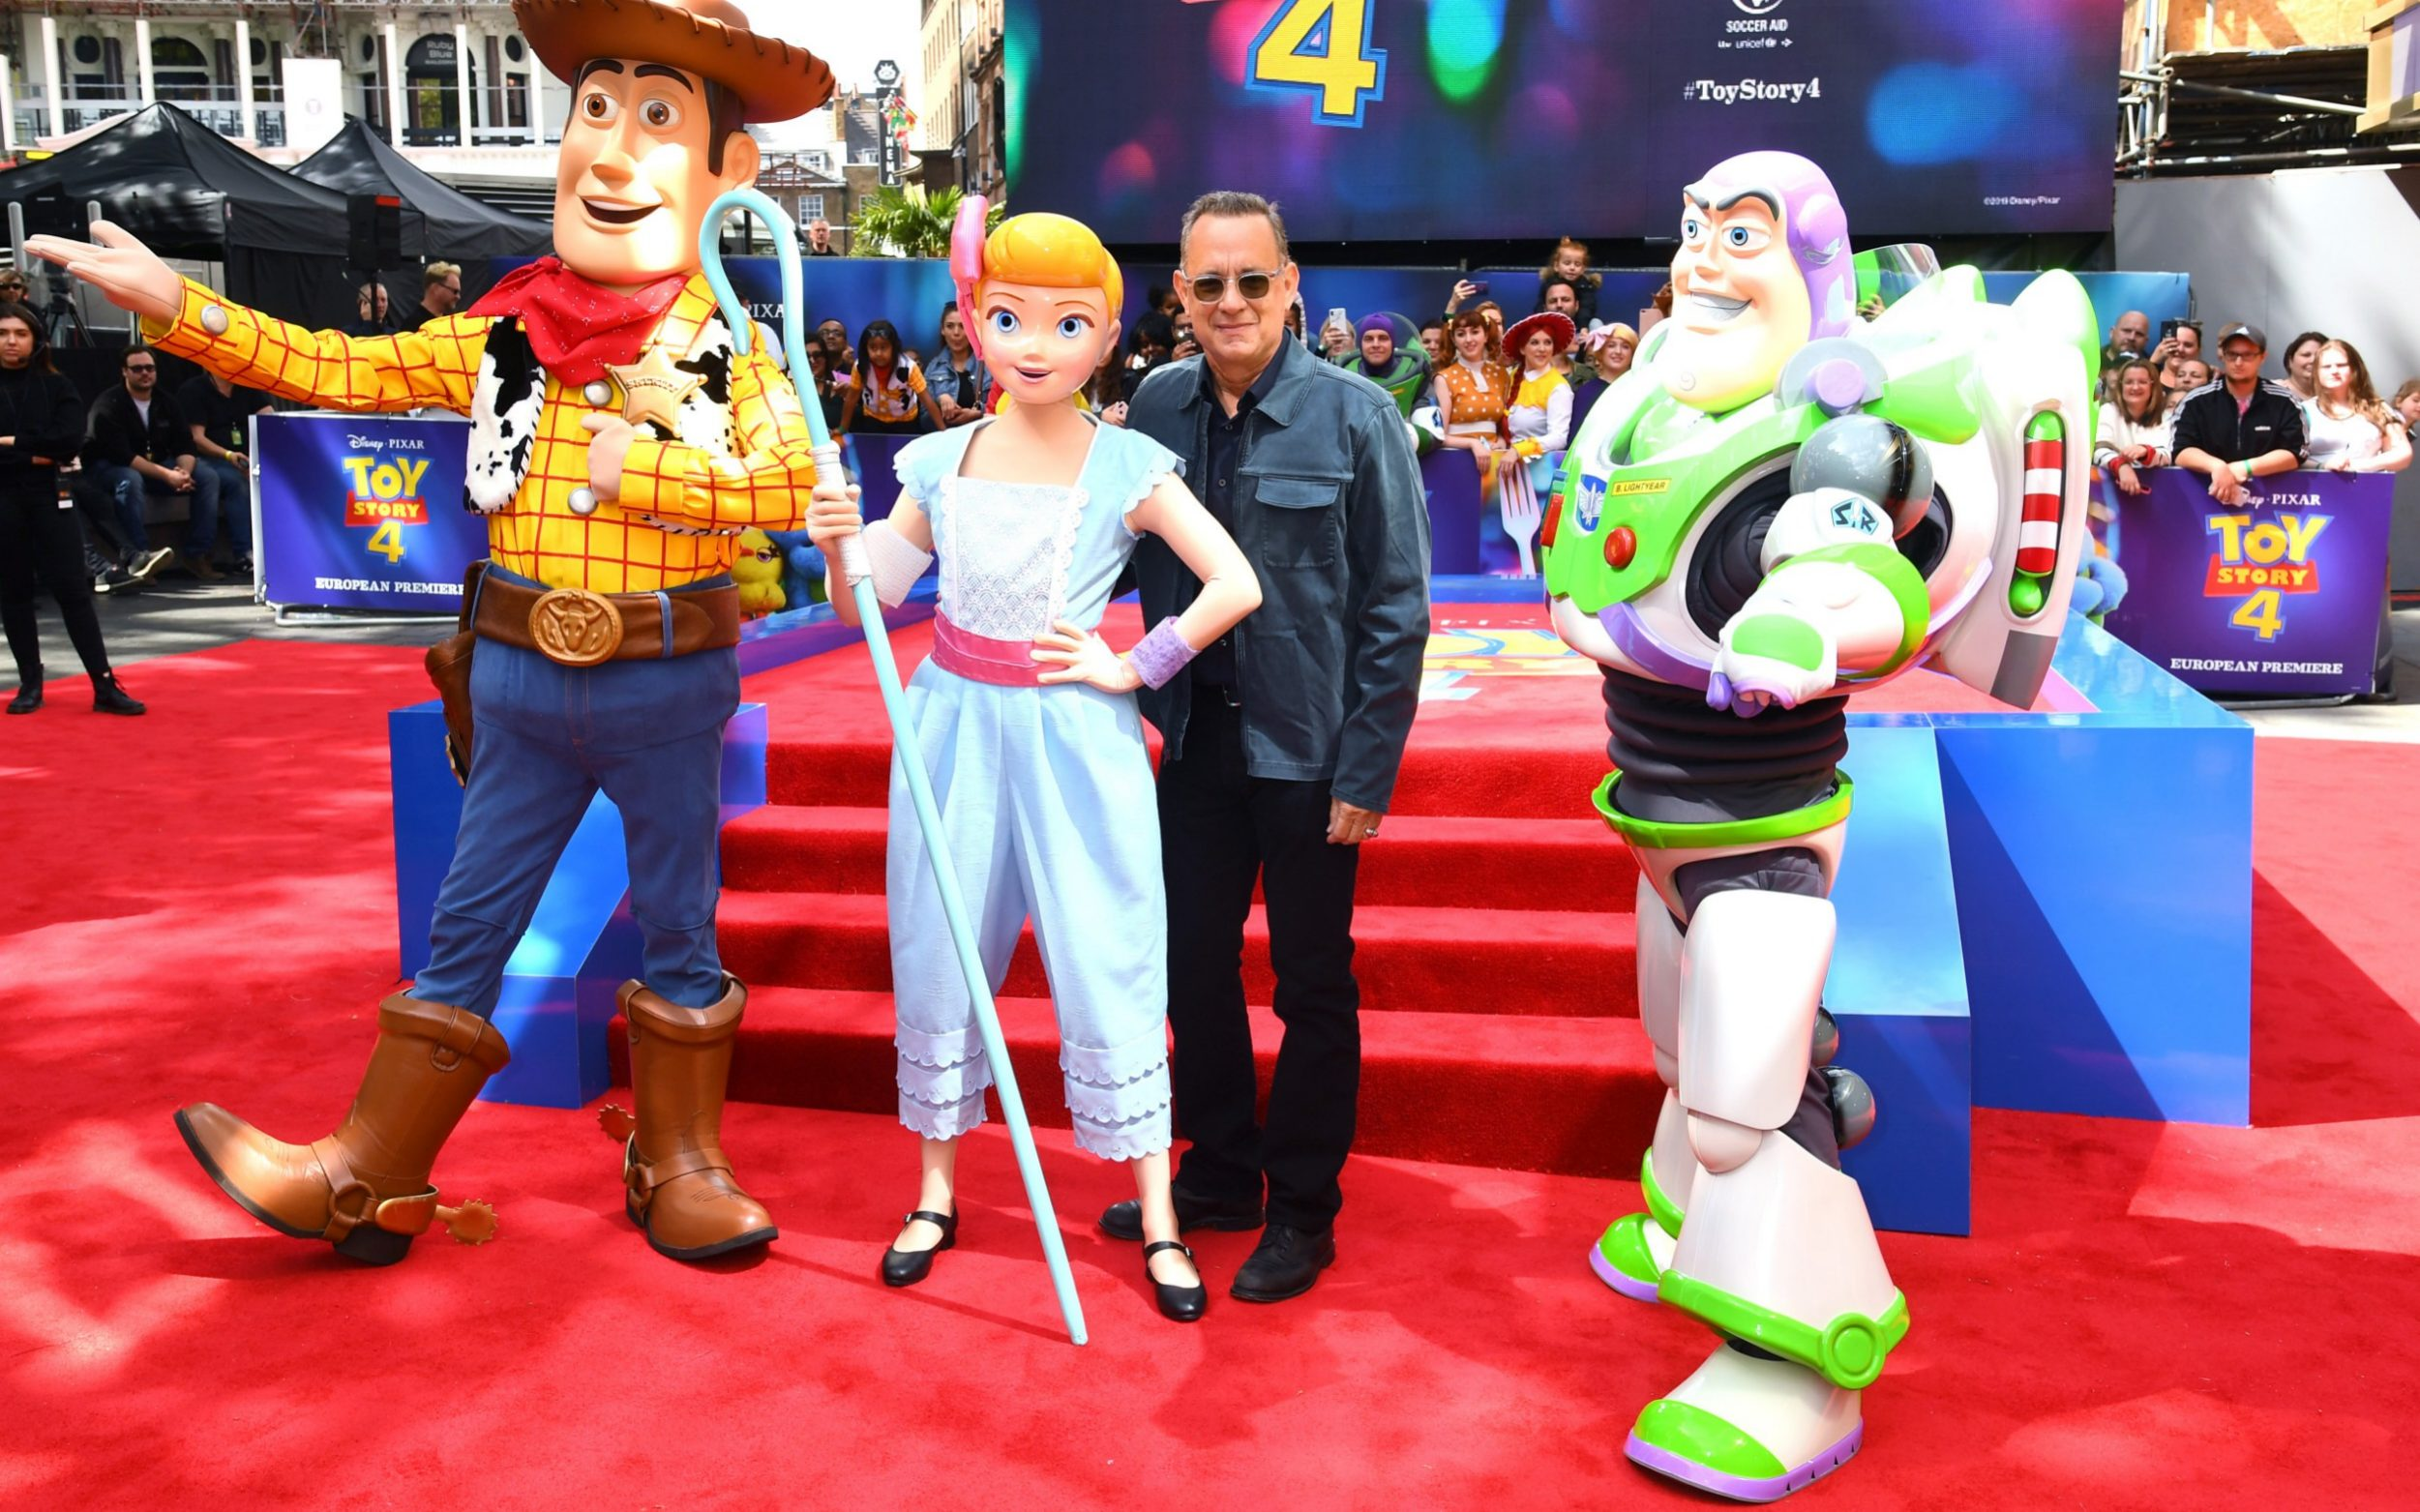 Tom Hanks Signs Autographs As He Attends The Toy Story 4